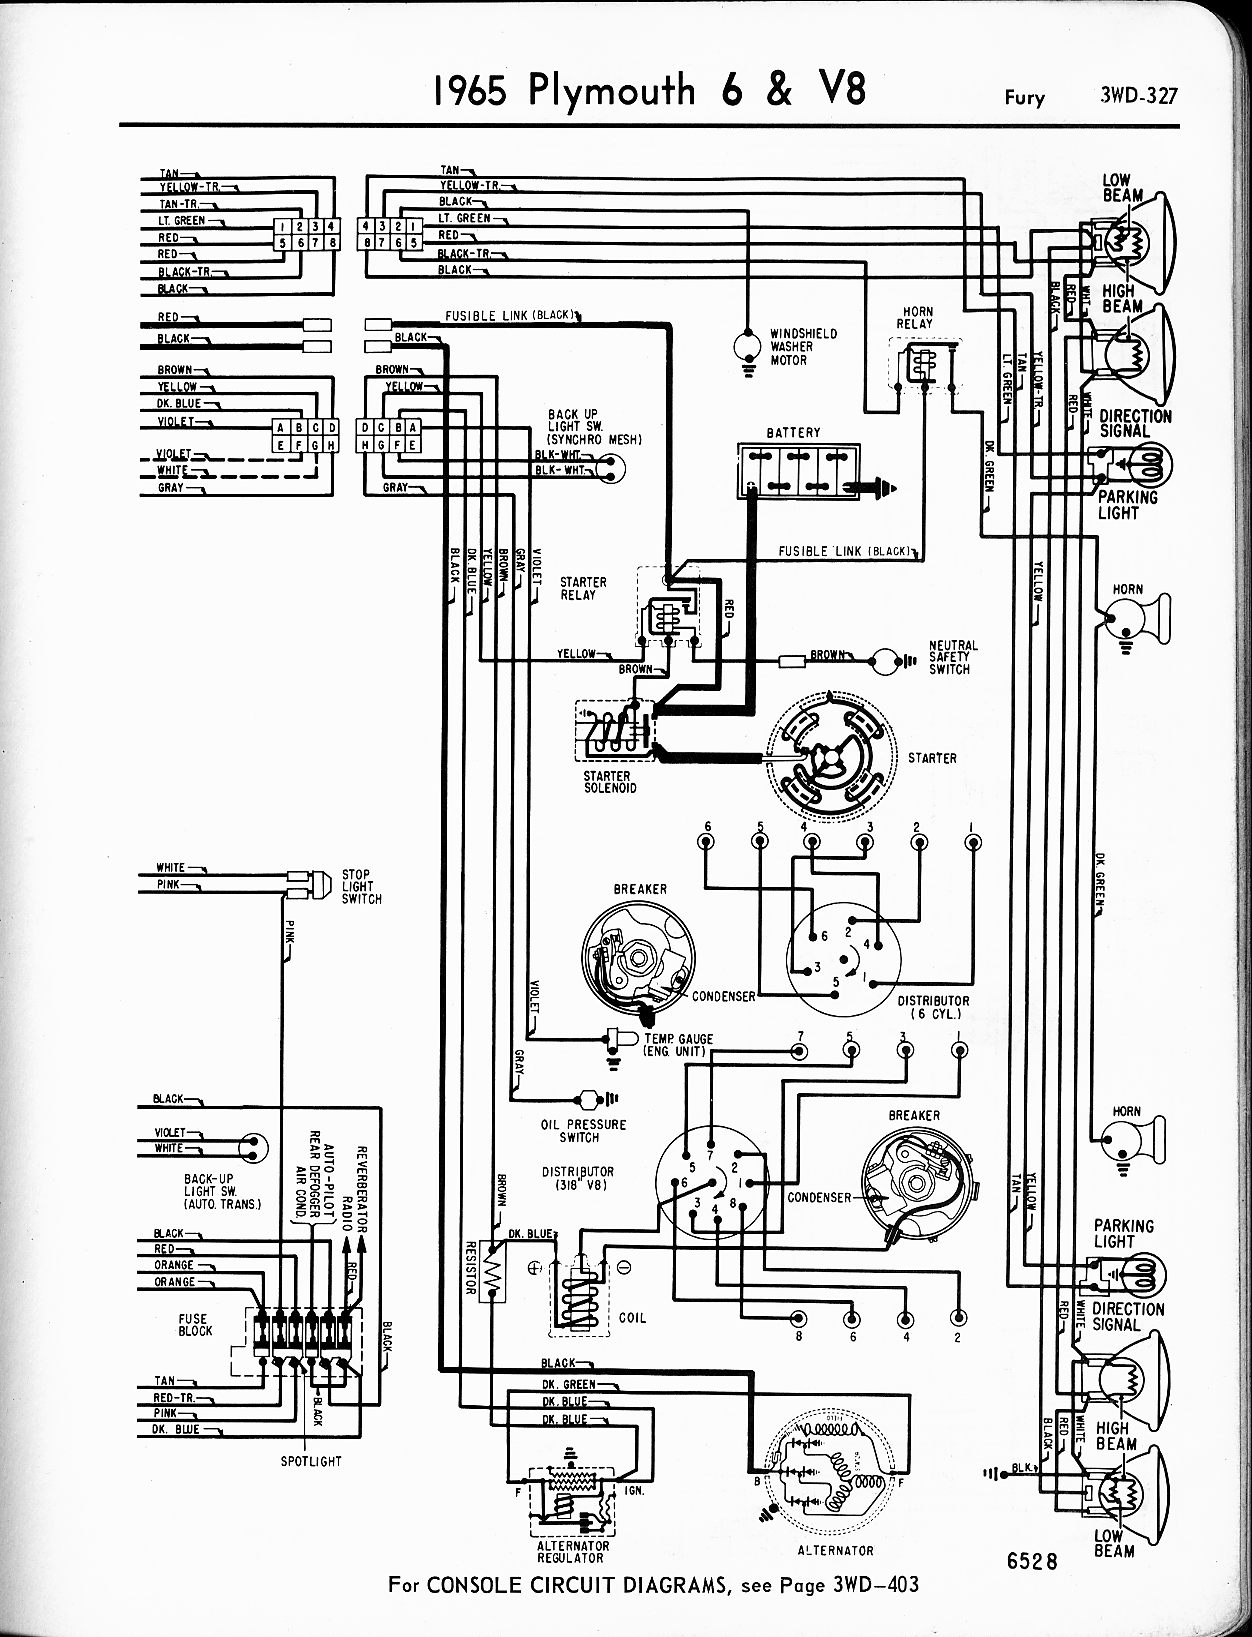 1964 Plymouth Valiant Wiring Diagram Data Ford Falcon Ignition Ac 1973